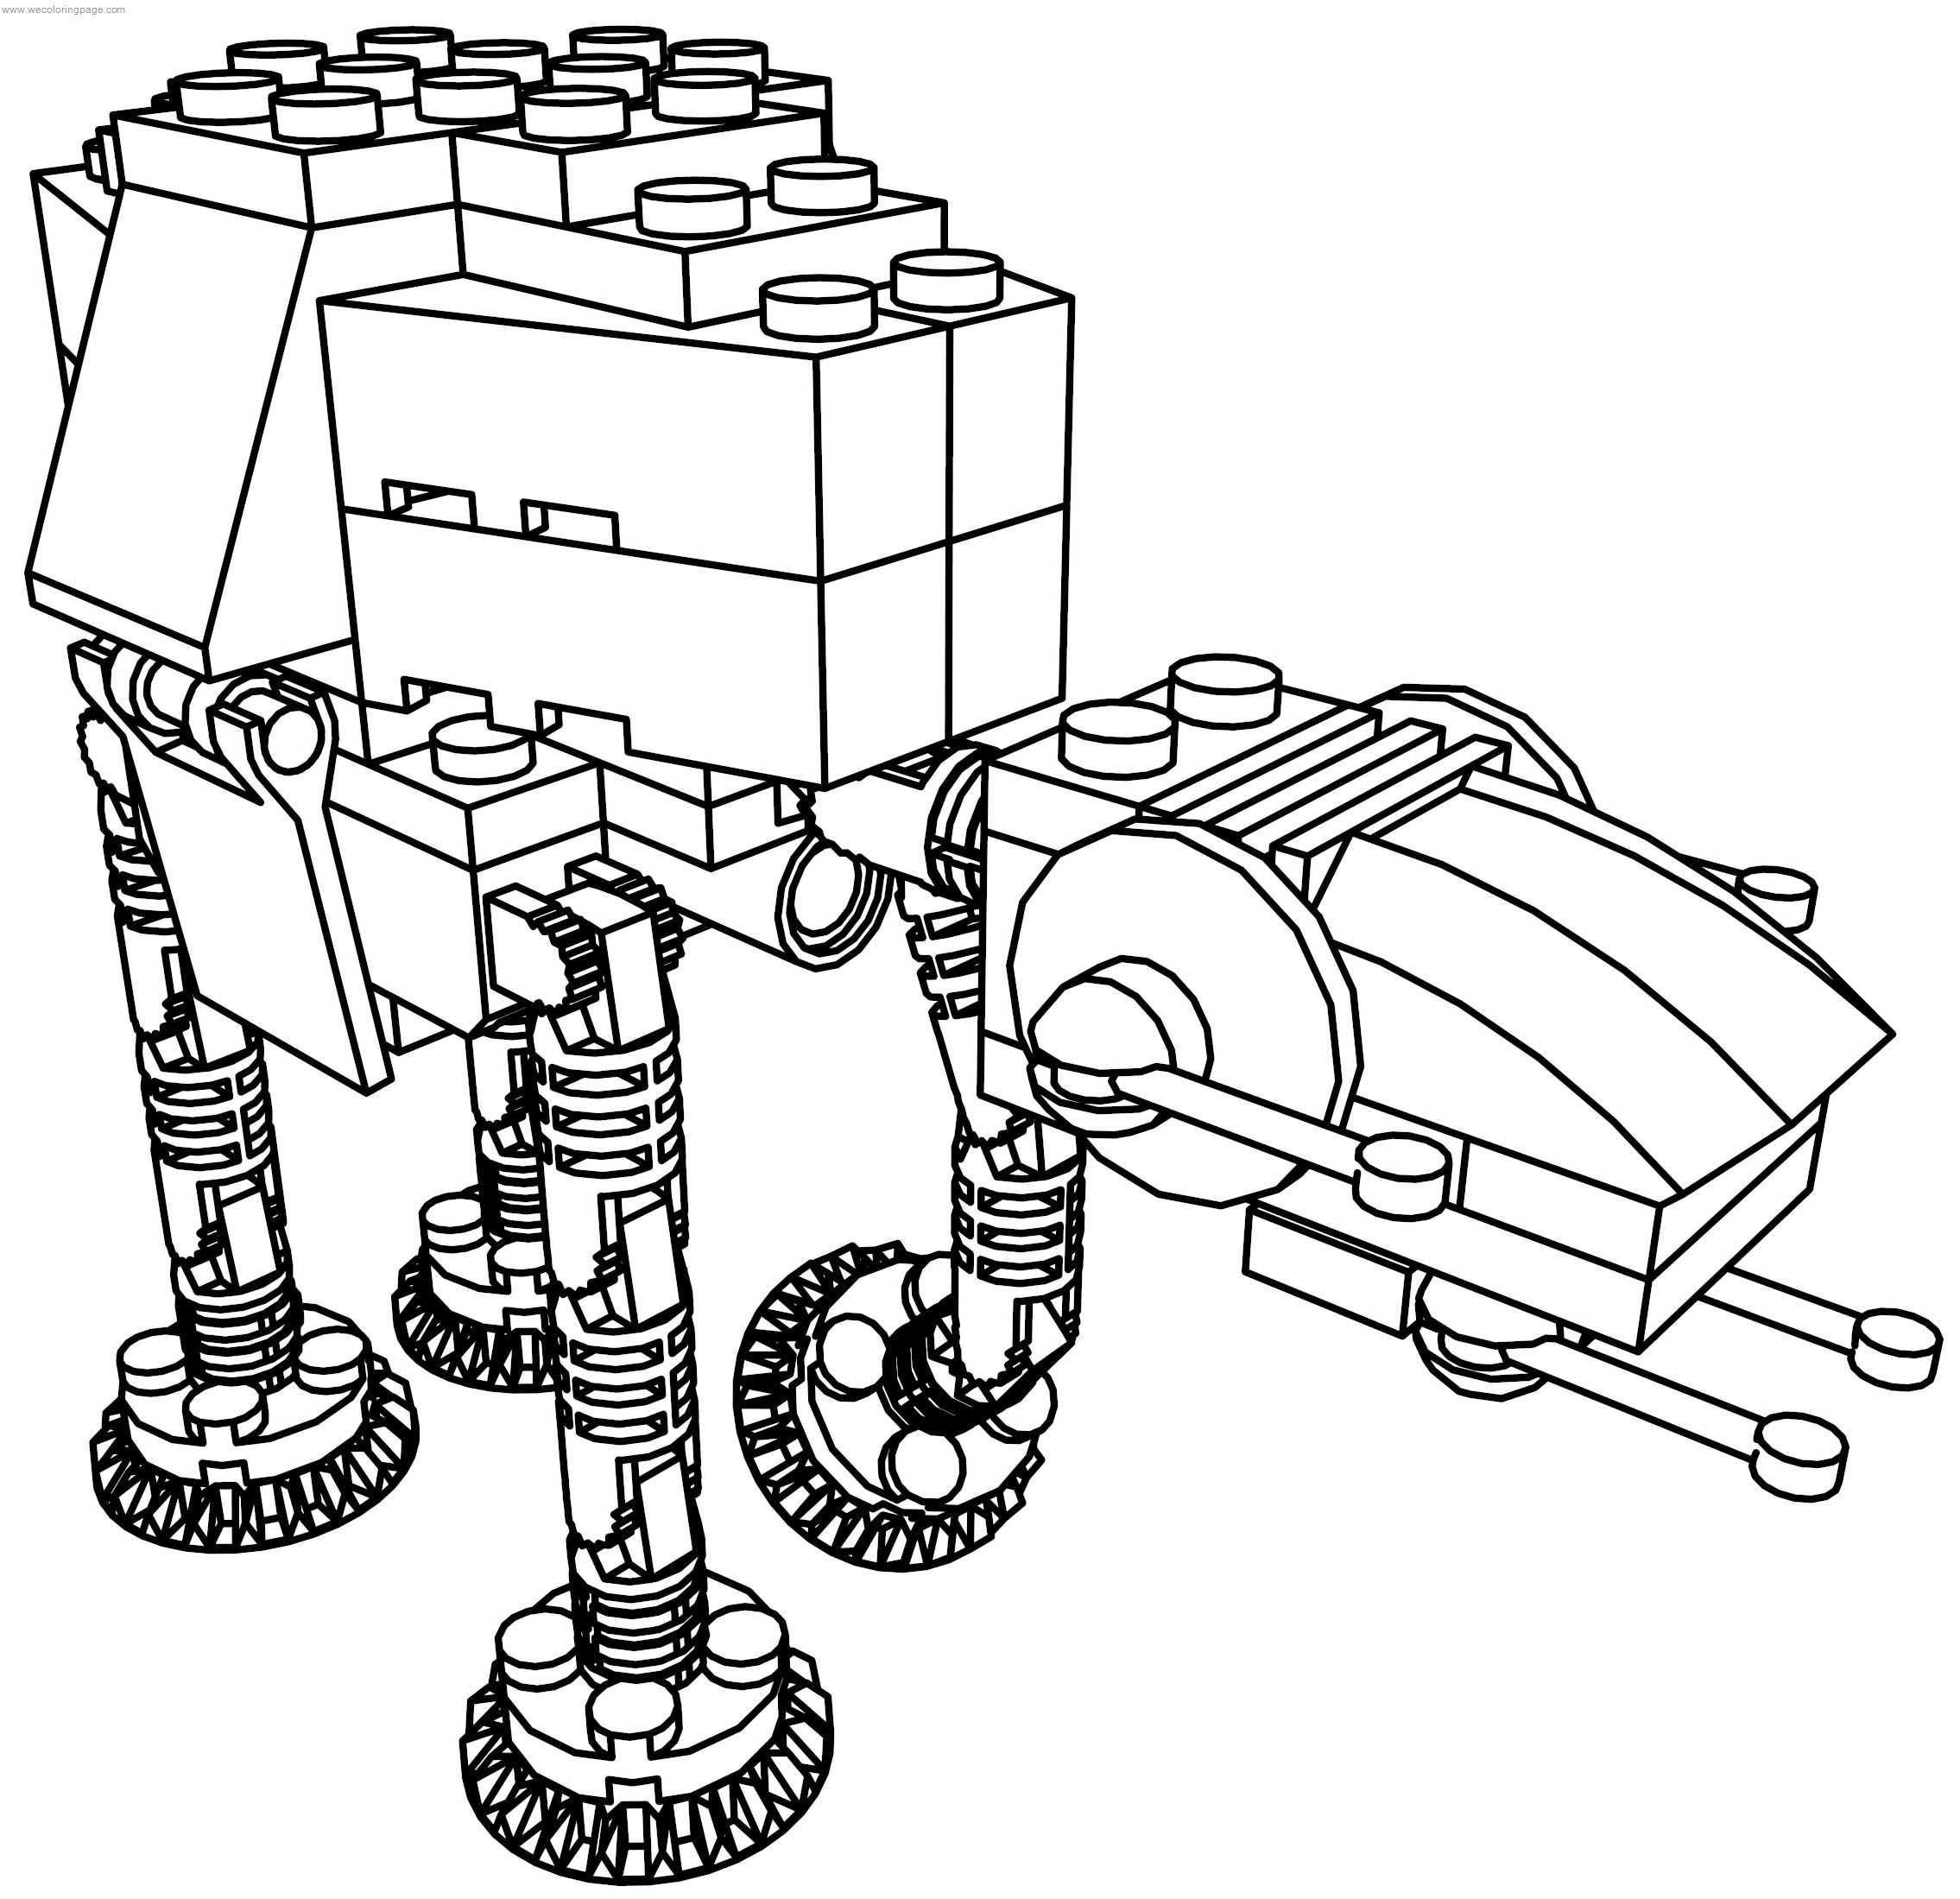 star wars lego colouring lego star wars coloring pages to download and print for free star colouring wars lego